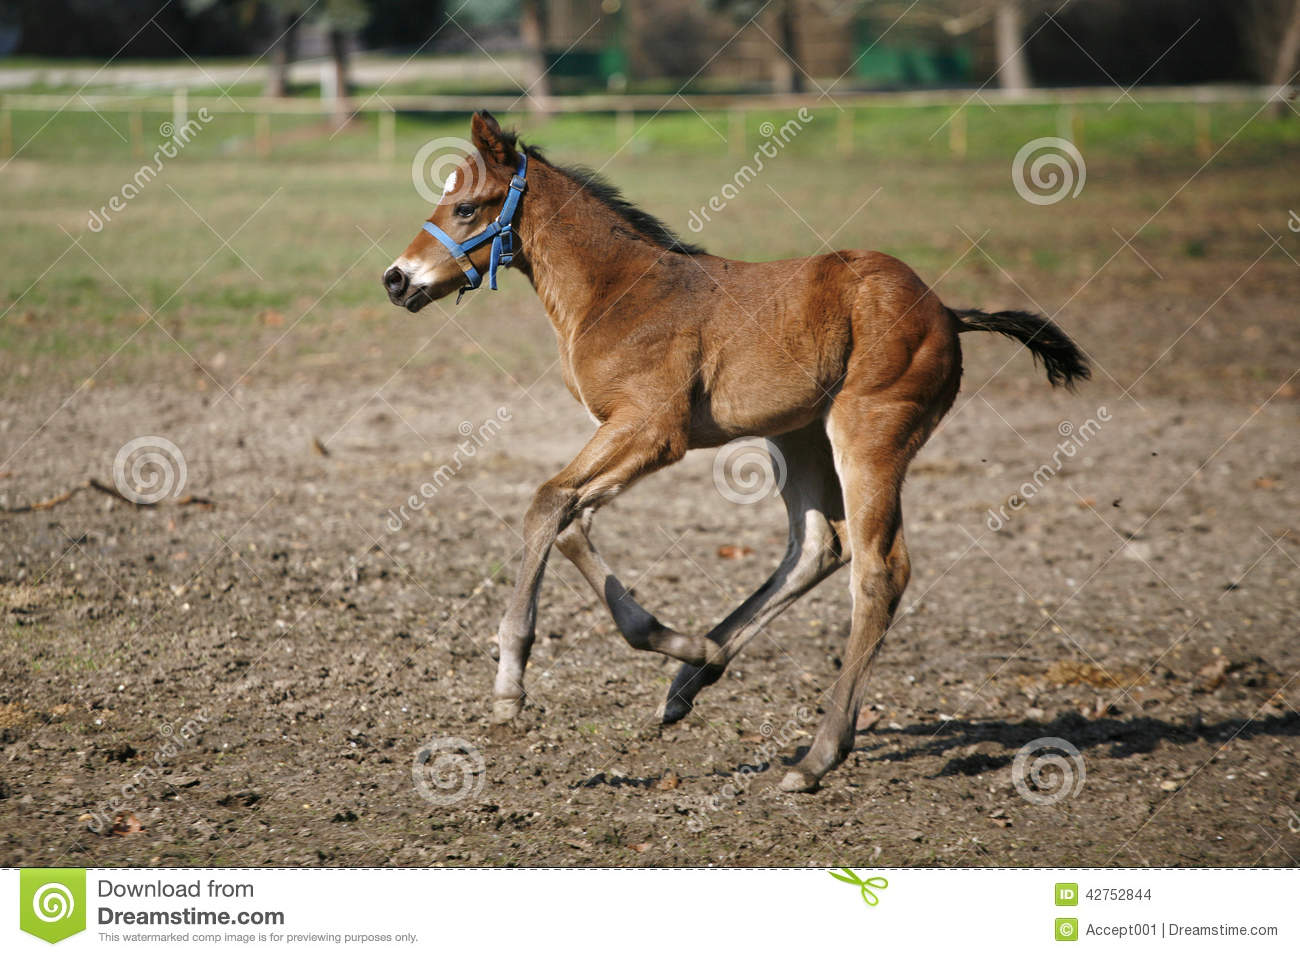 Beautiful Baby Horse Galloping In The Field Stock Photo Image Of Horse Grass 42752844